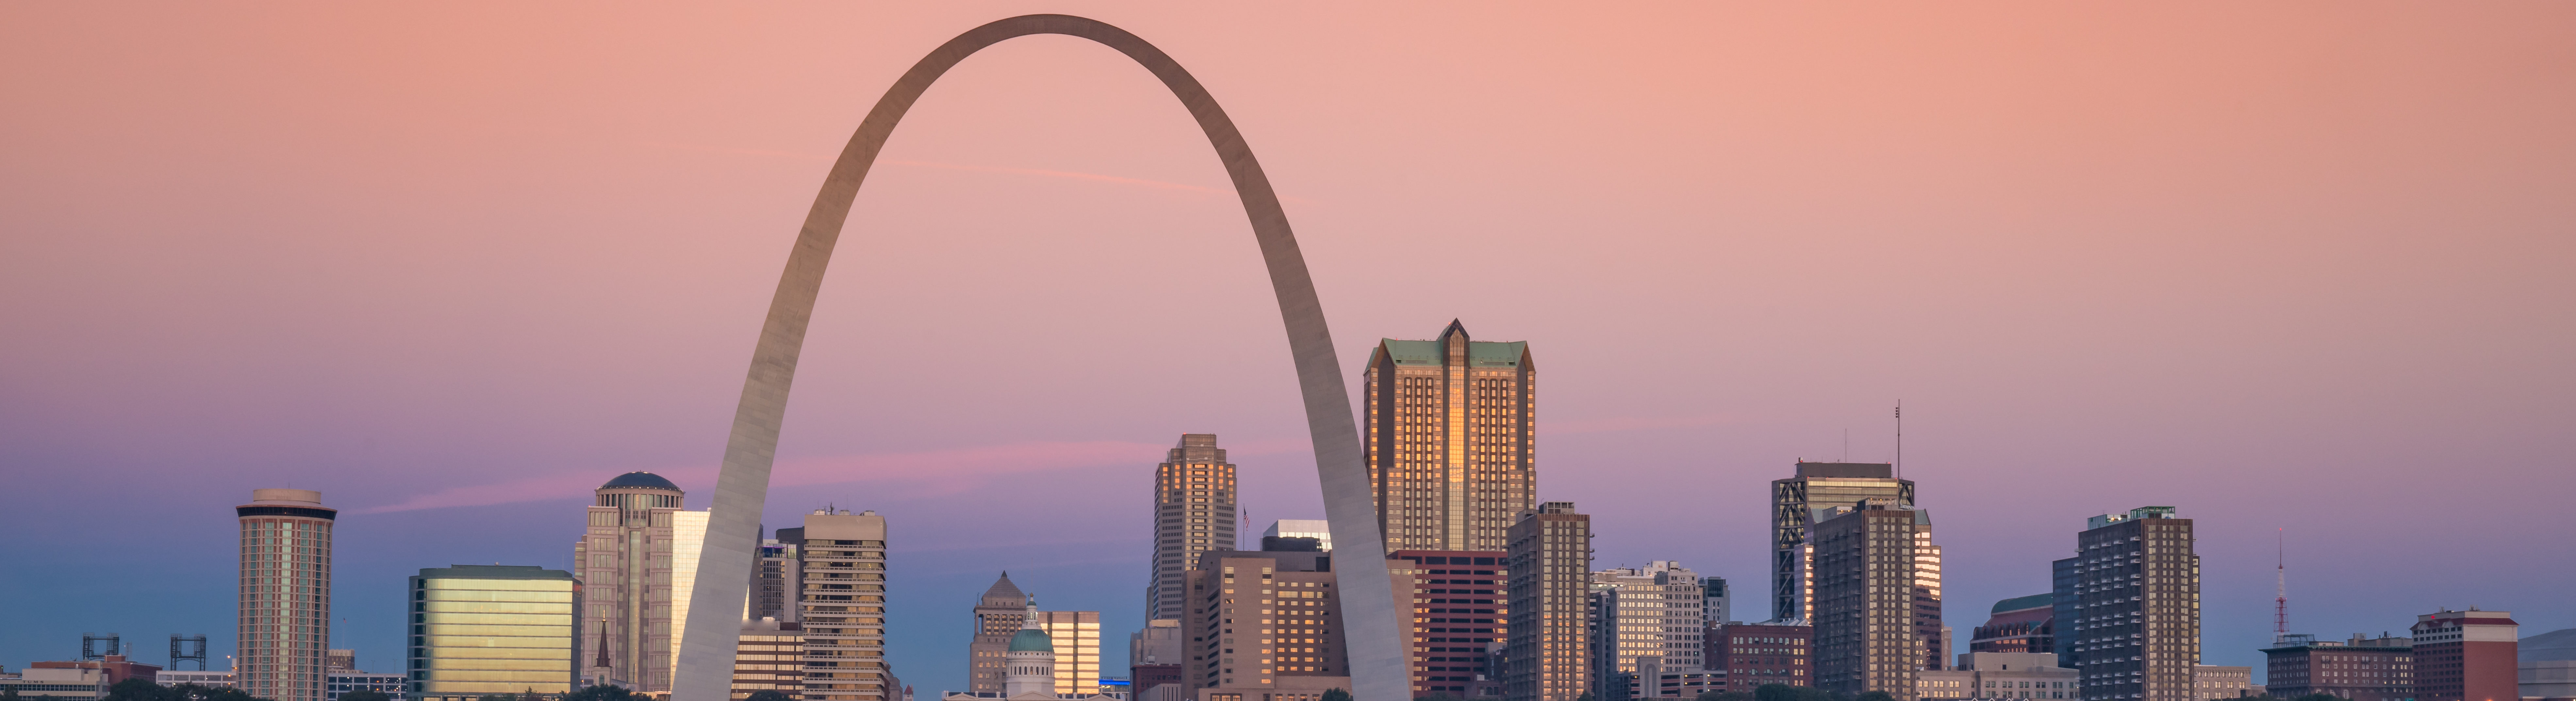 This is an image of The Gateway Arch in St. Louis where ASTA-USA offers professional translation services.